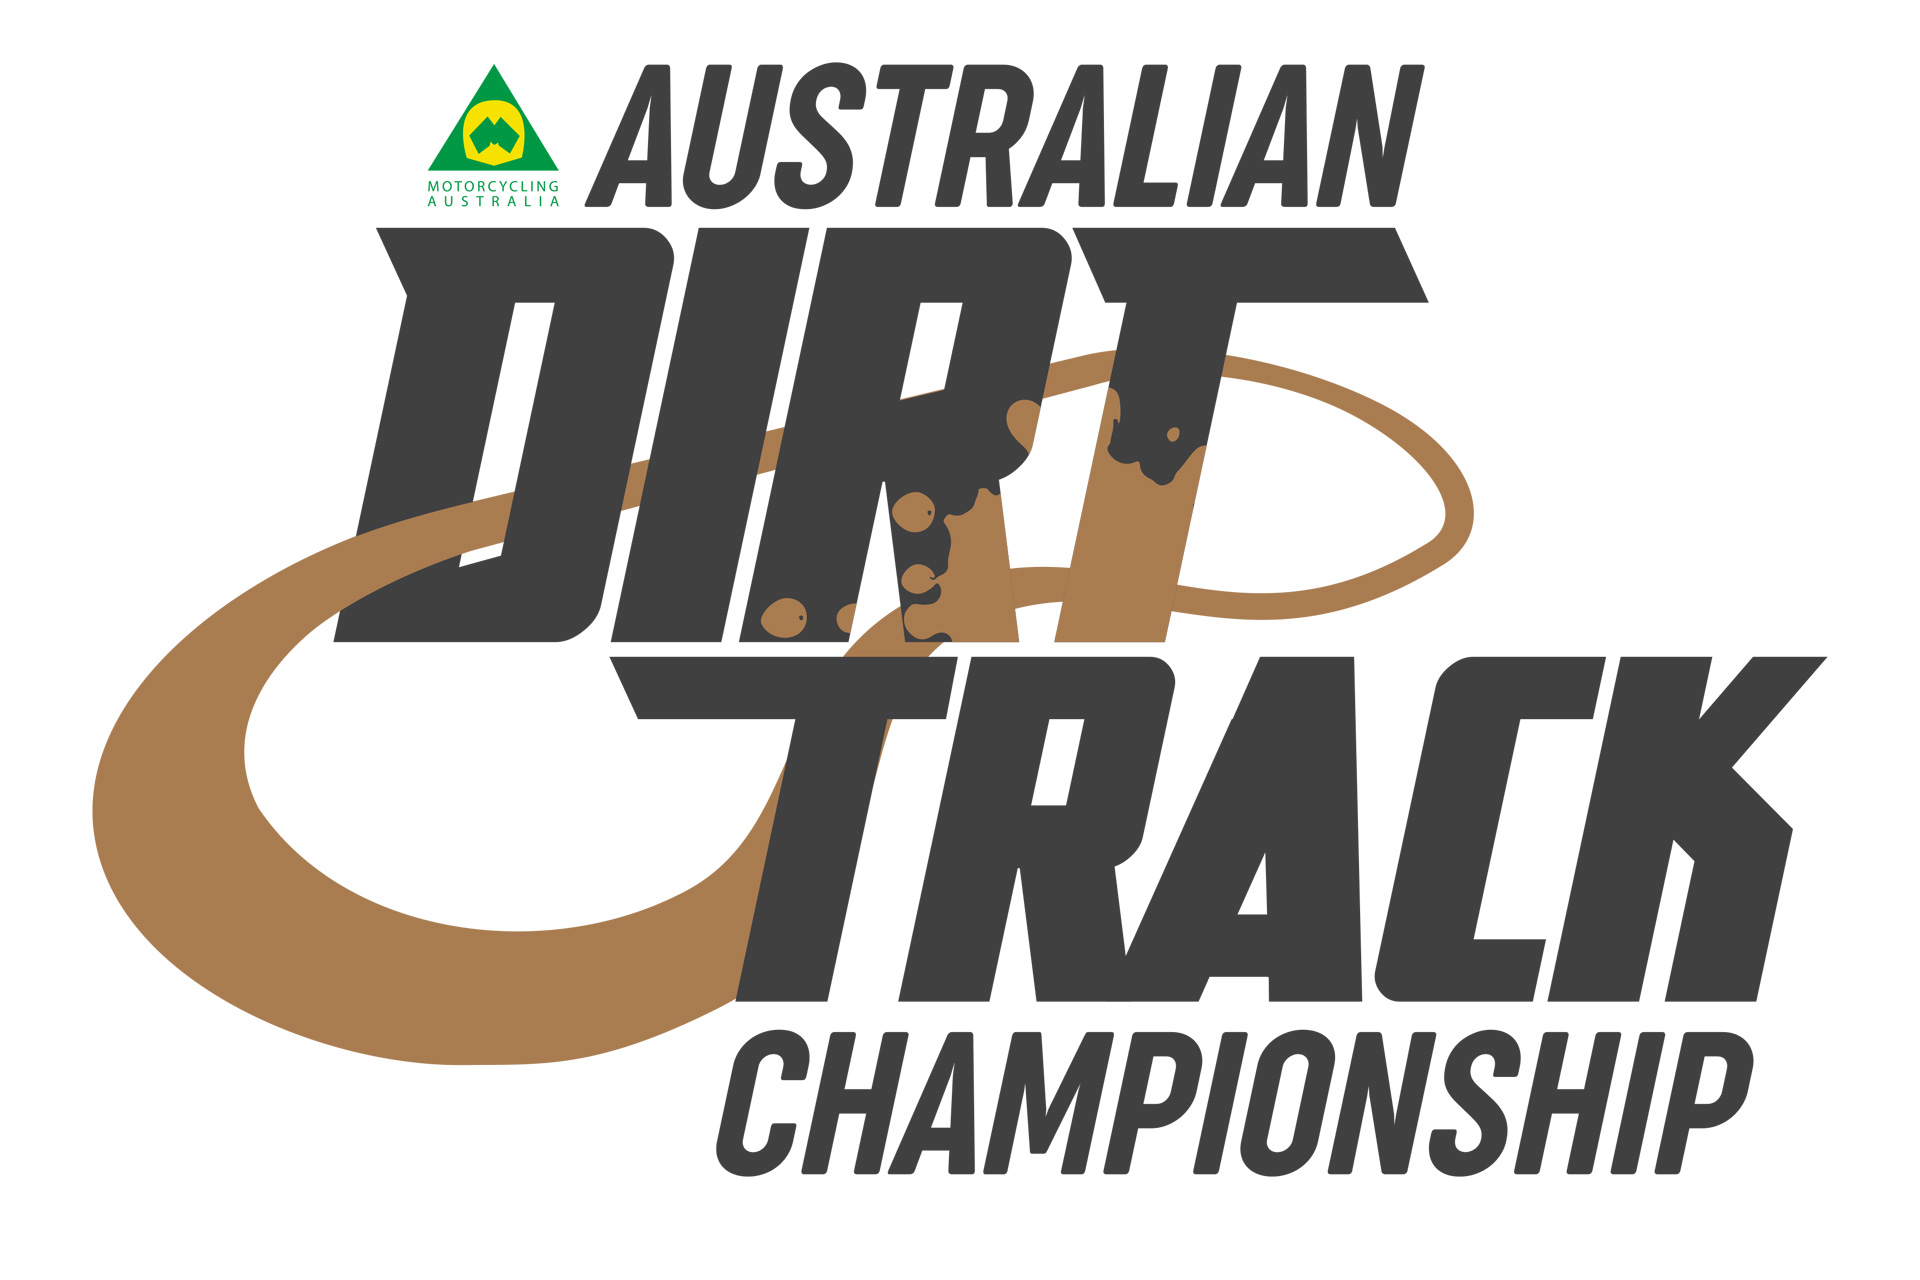 Entries are now open for the Aussie Dirt Track Championships